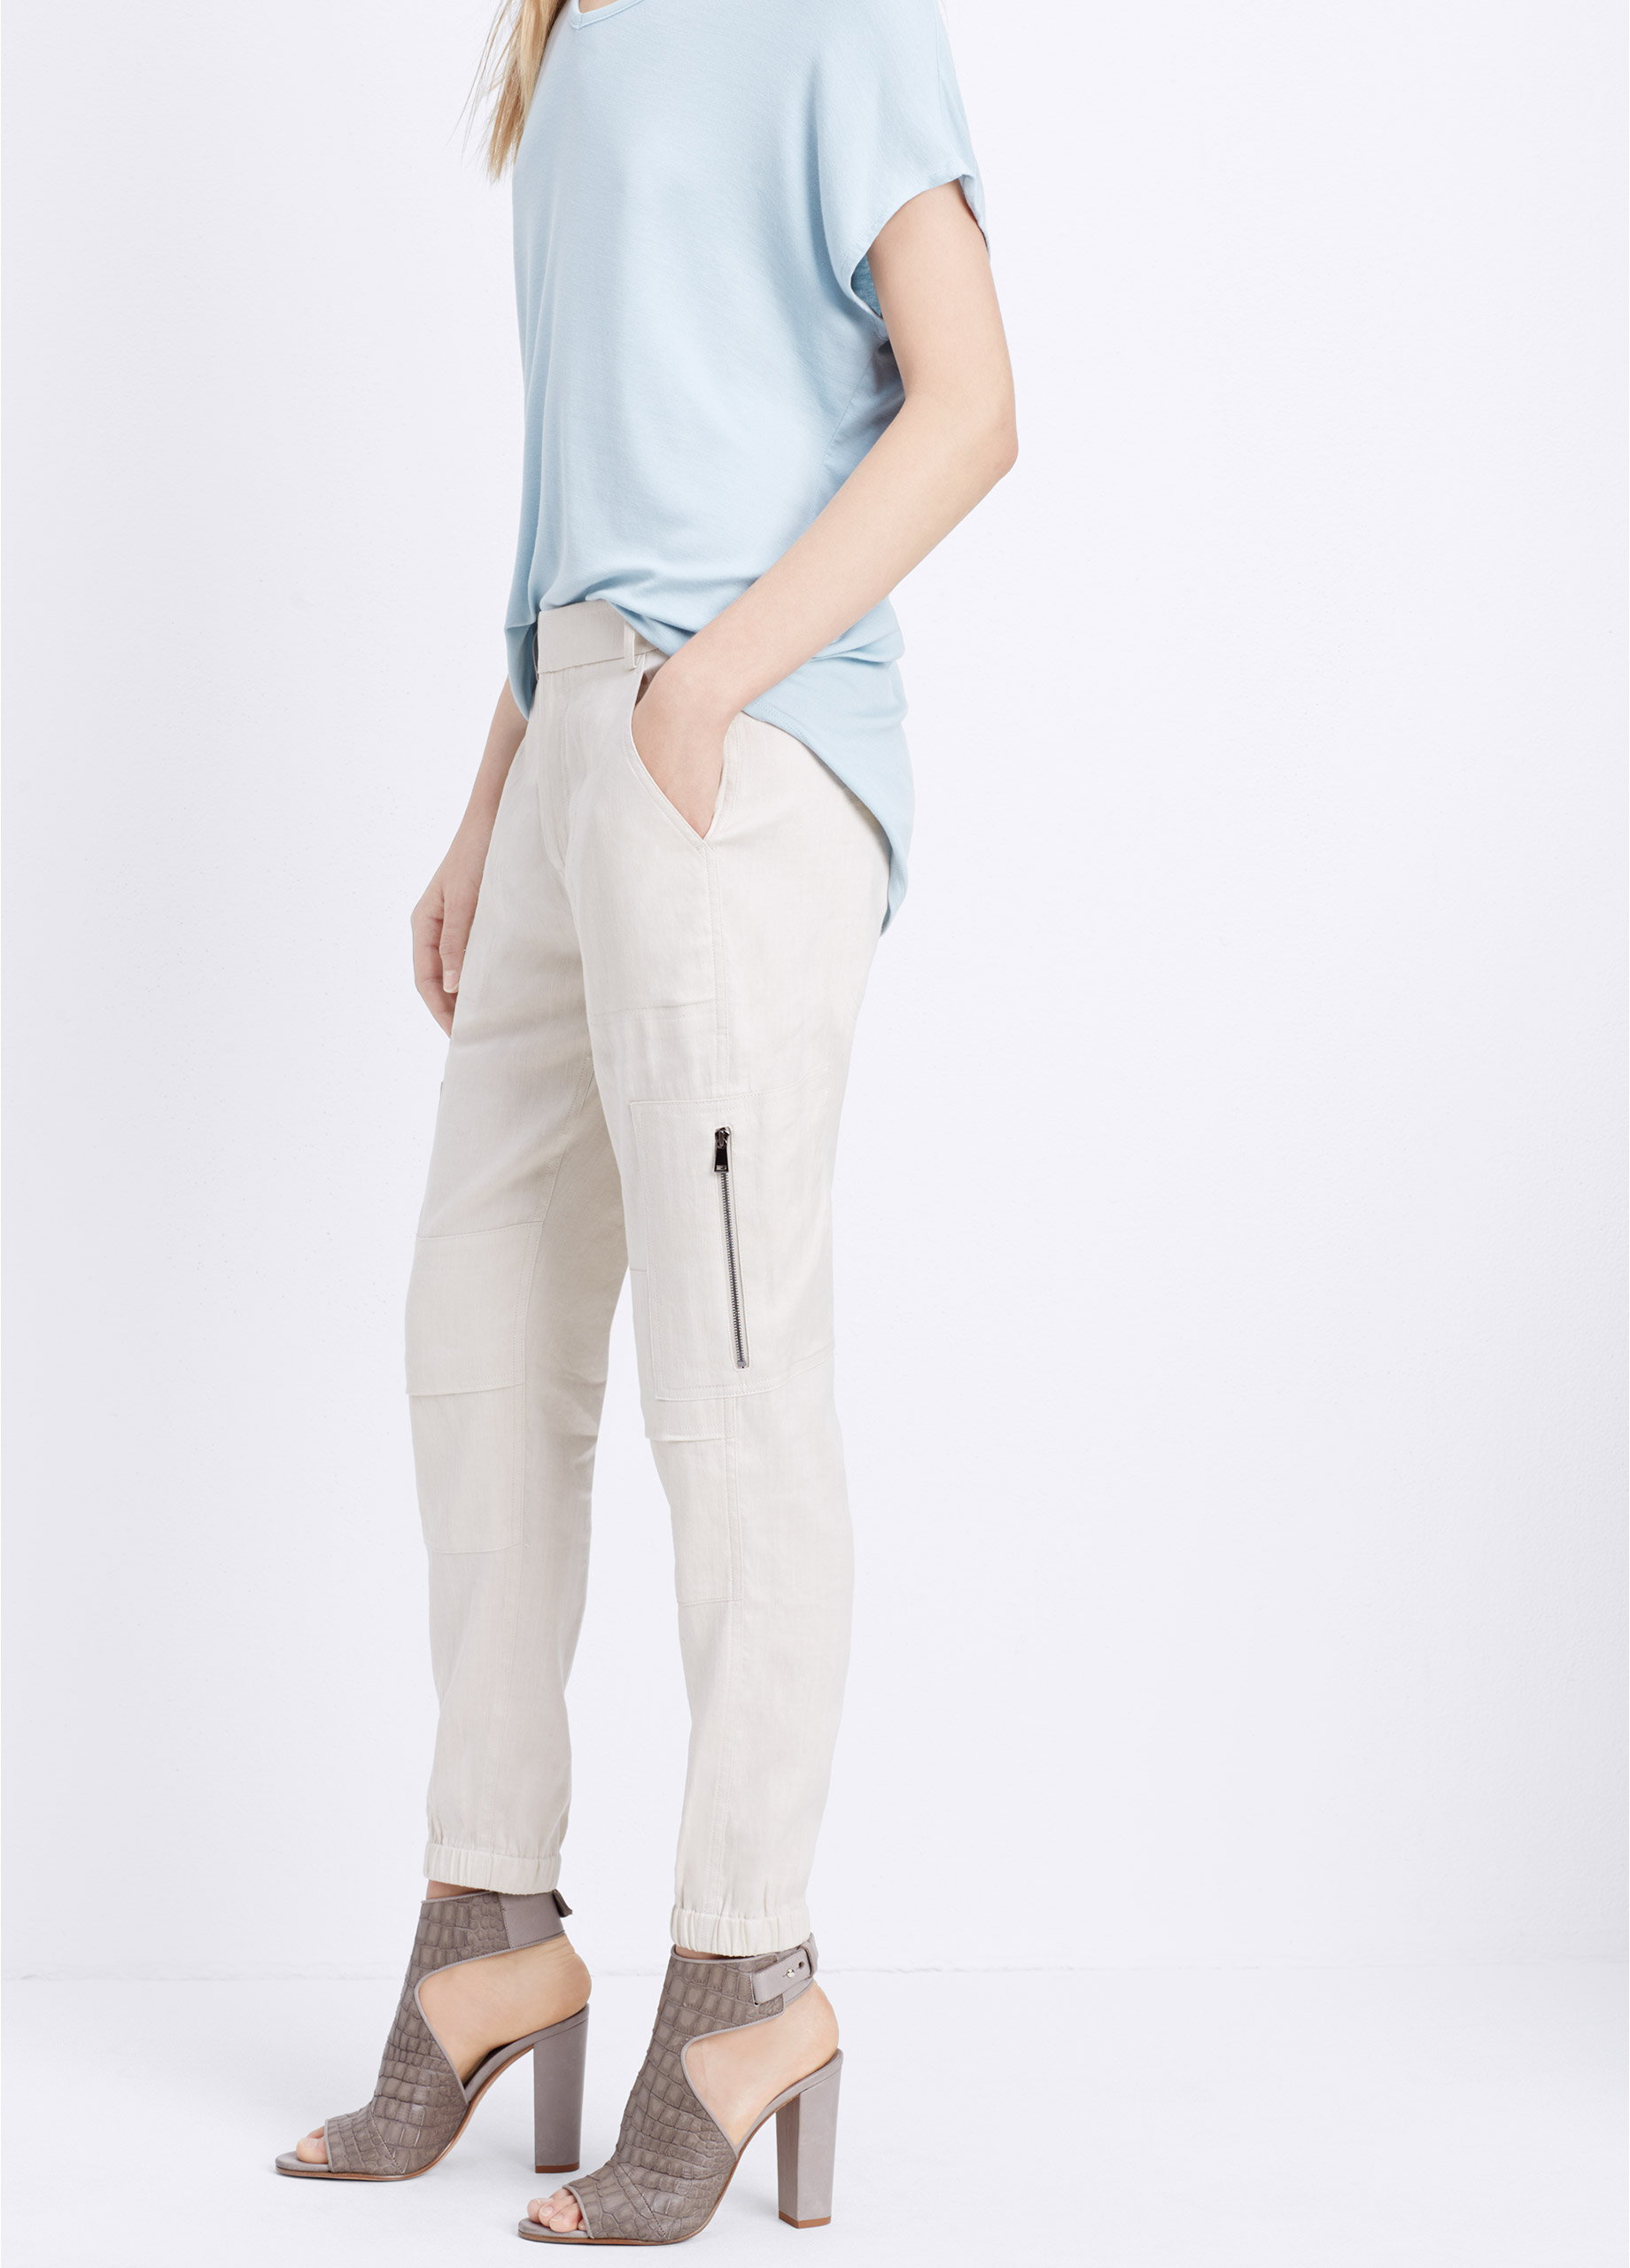 Lyst - Vince Stretch Linen Cargo Pant in Natural 301a457d0c